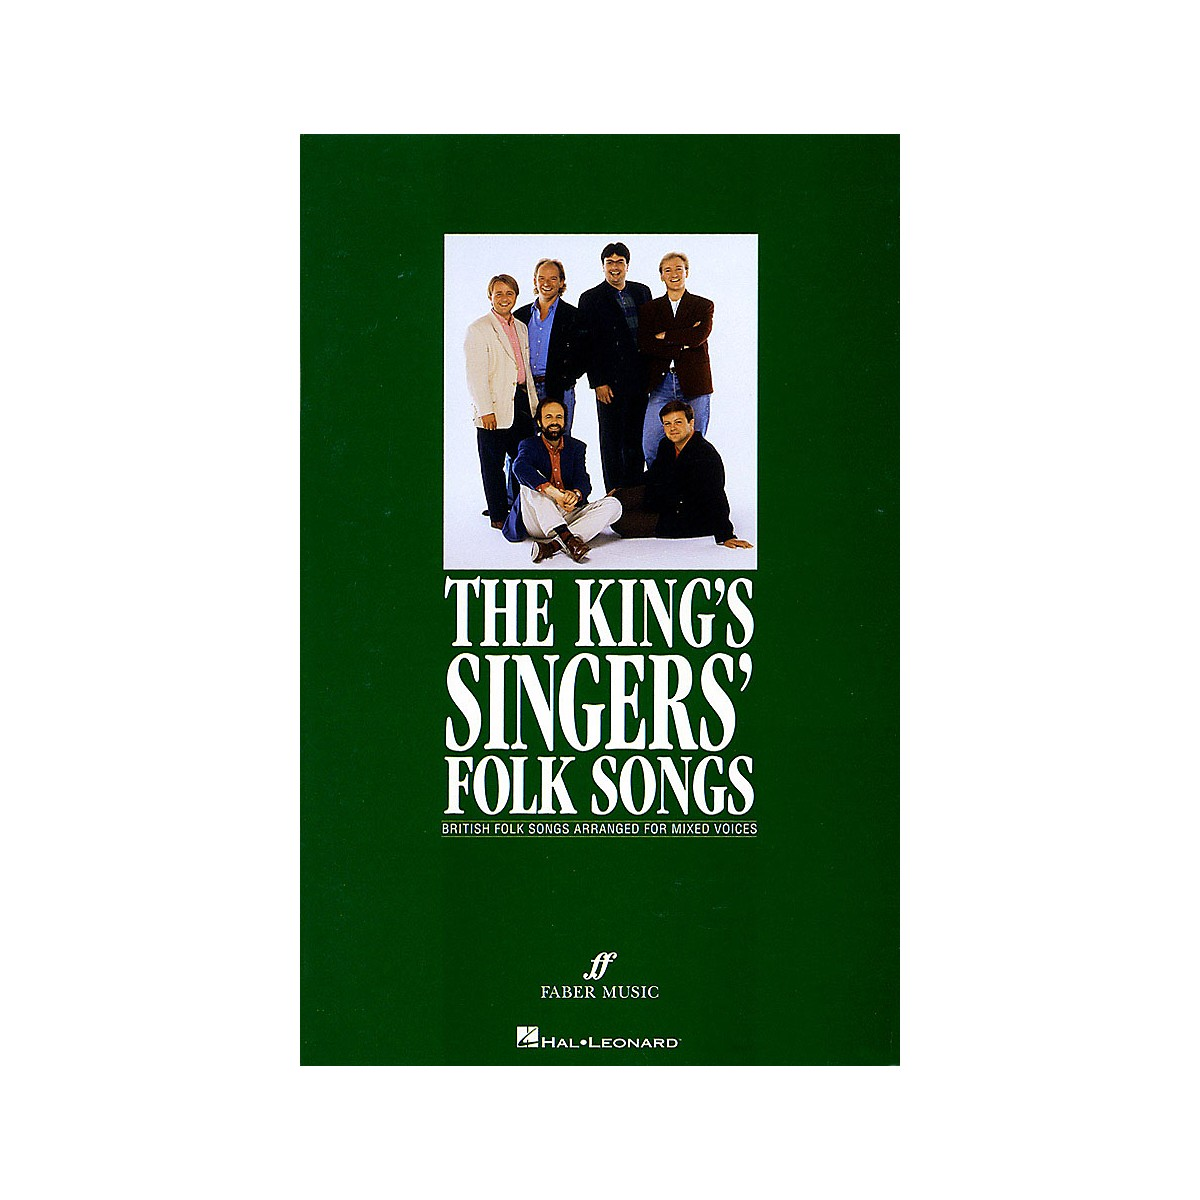 Faber Music LTD The King's Singers' Folk Songs (Collection) SATB Divisi